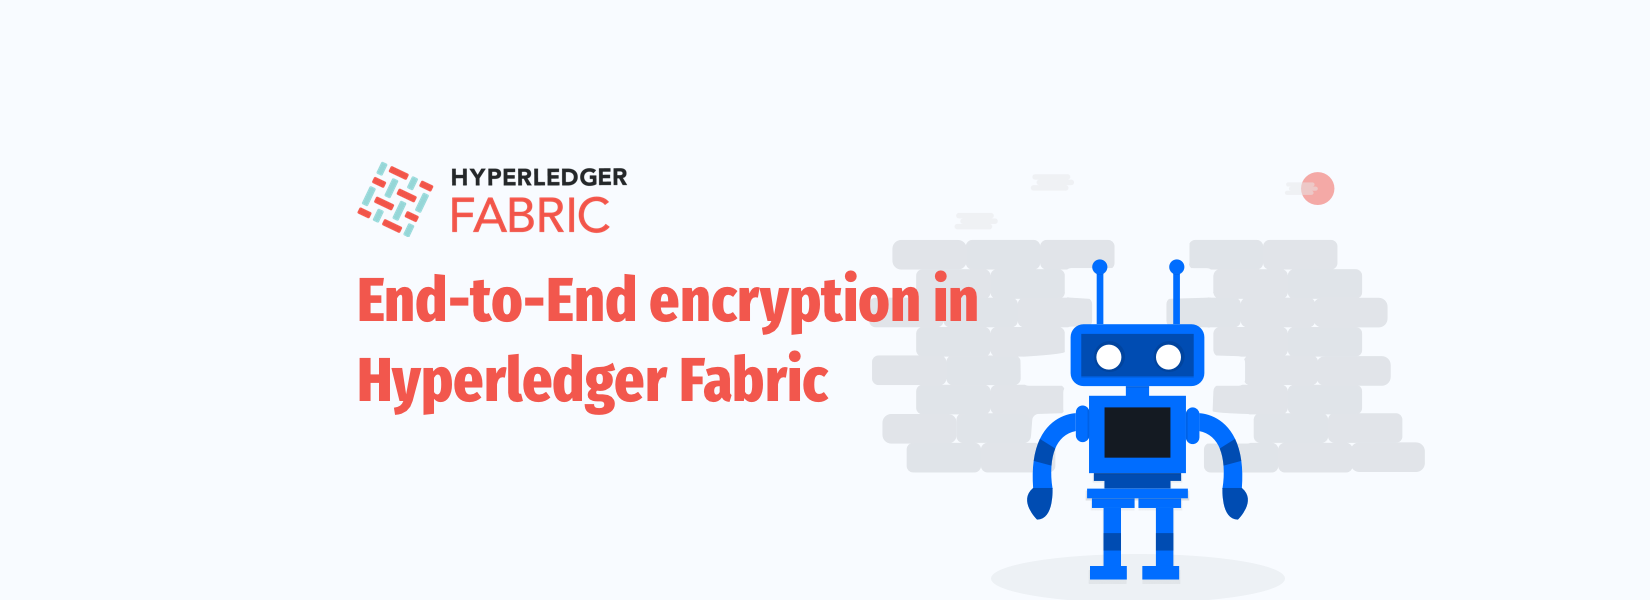 How to Build an End-to-End encryption in Hyperledger Fabric